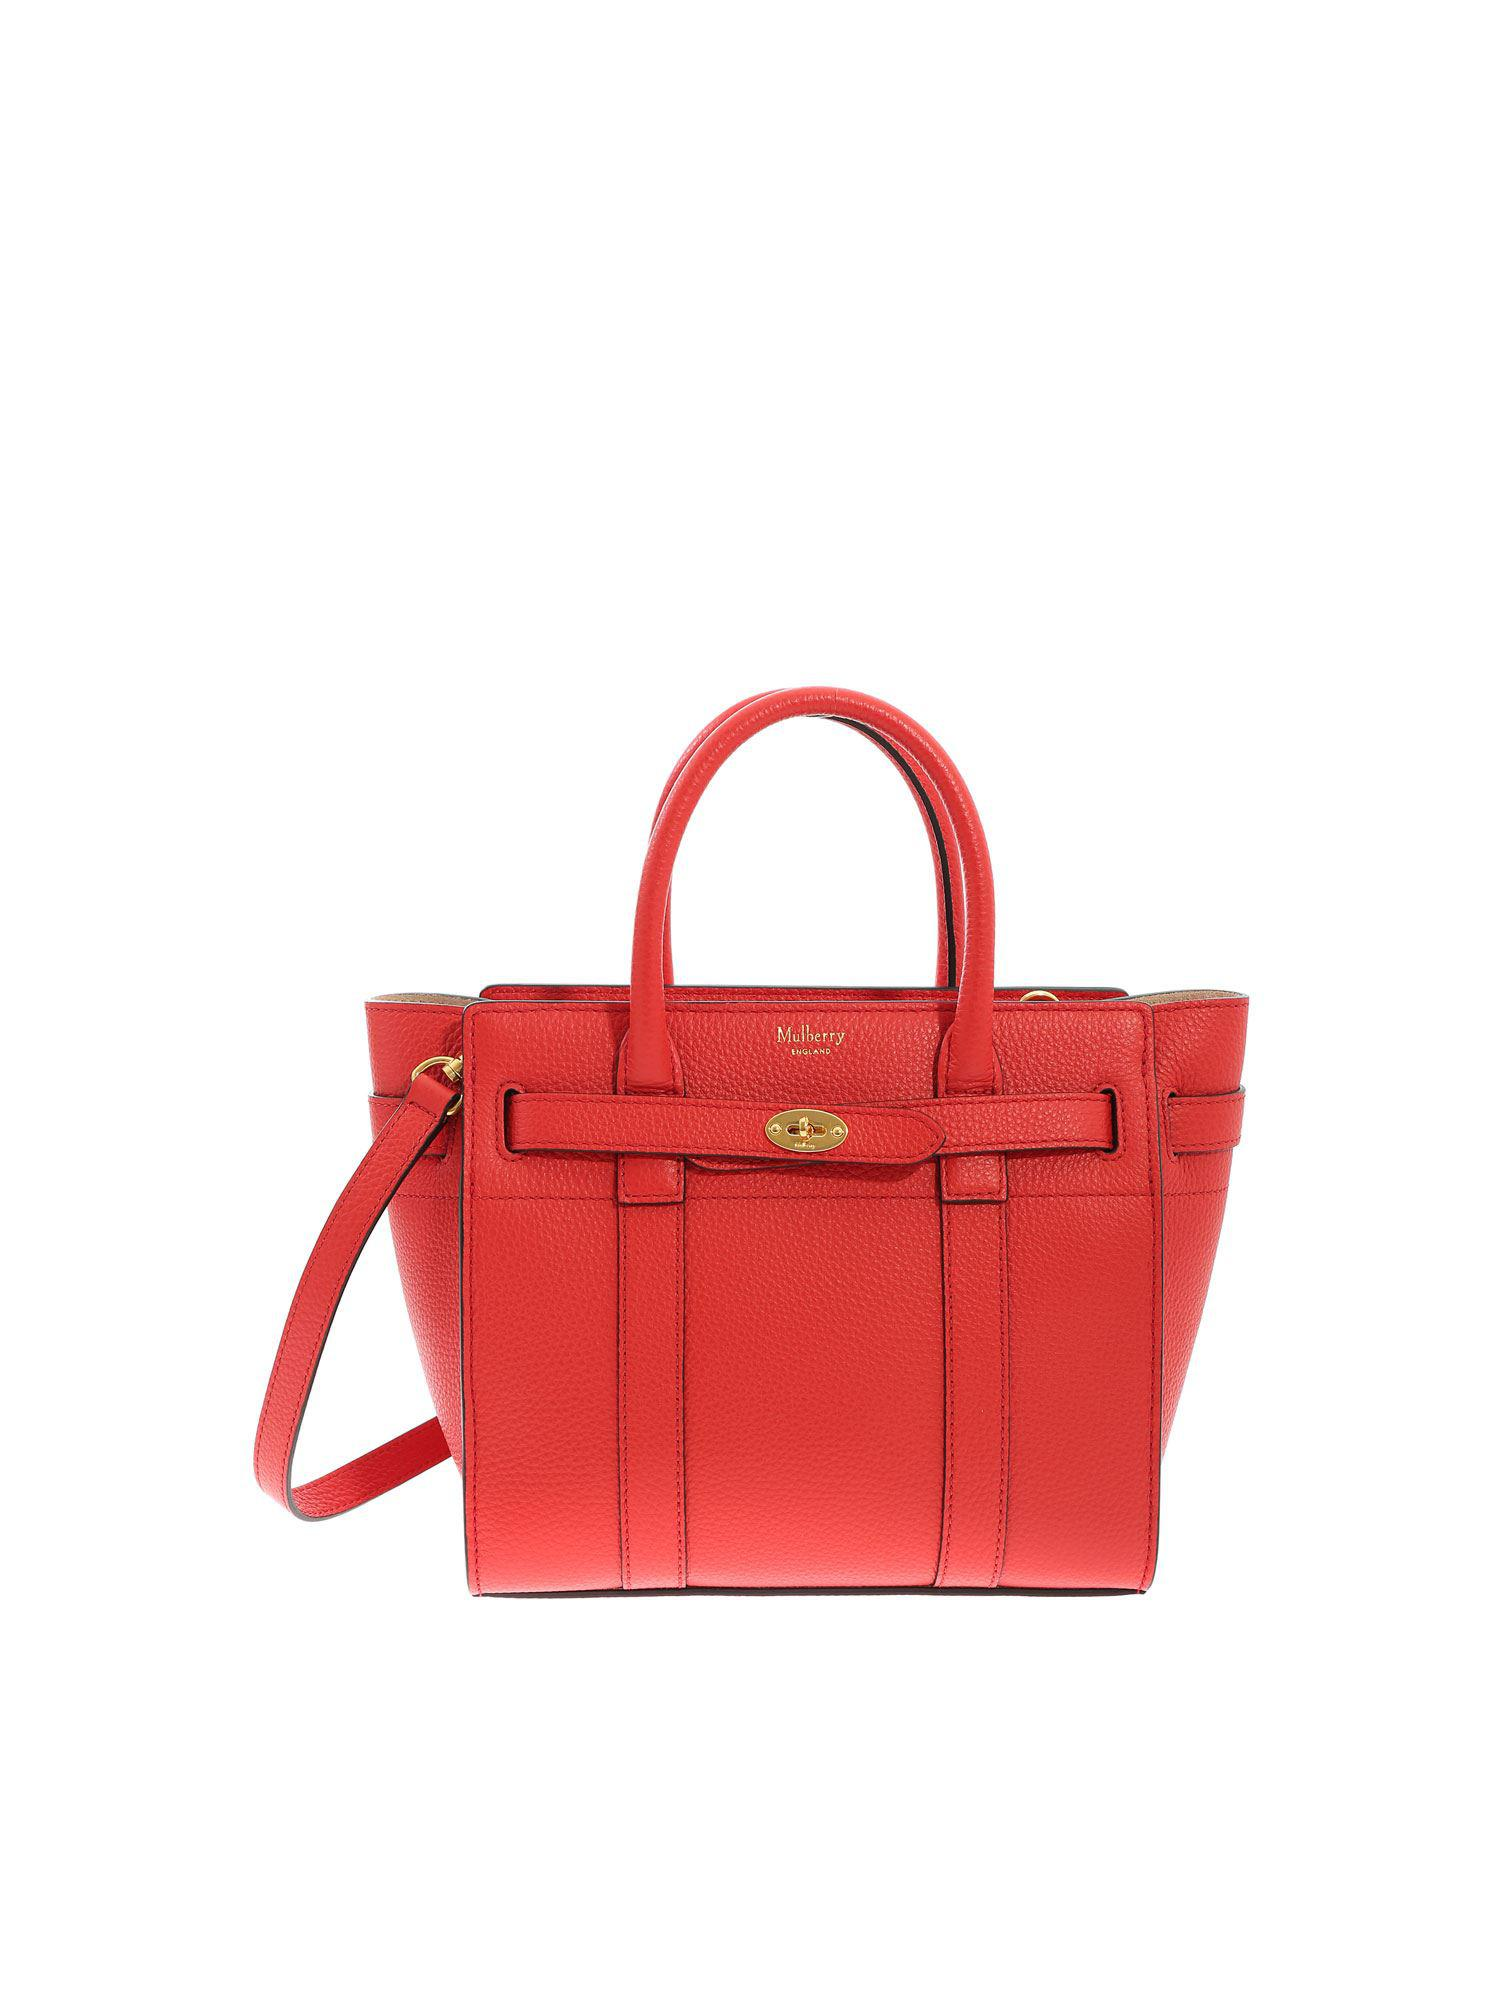 2475c838989 Mulberry Mini Zipped Bayswater Red Bag in Red - Lyst